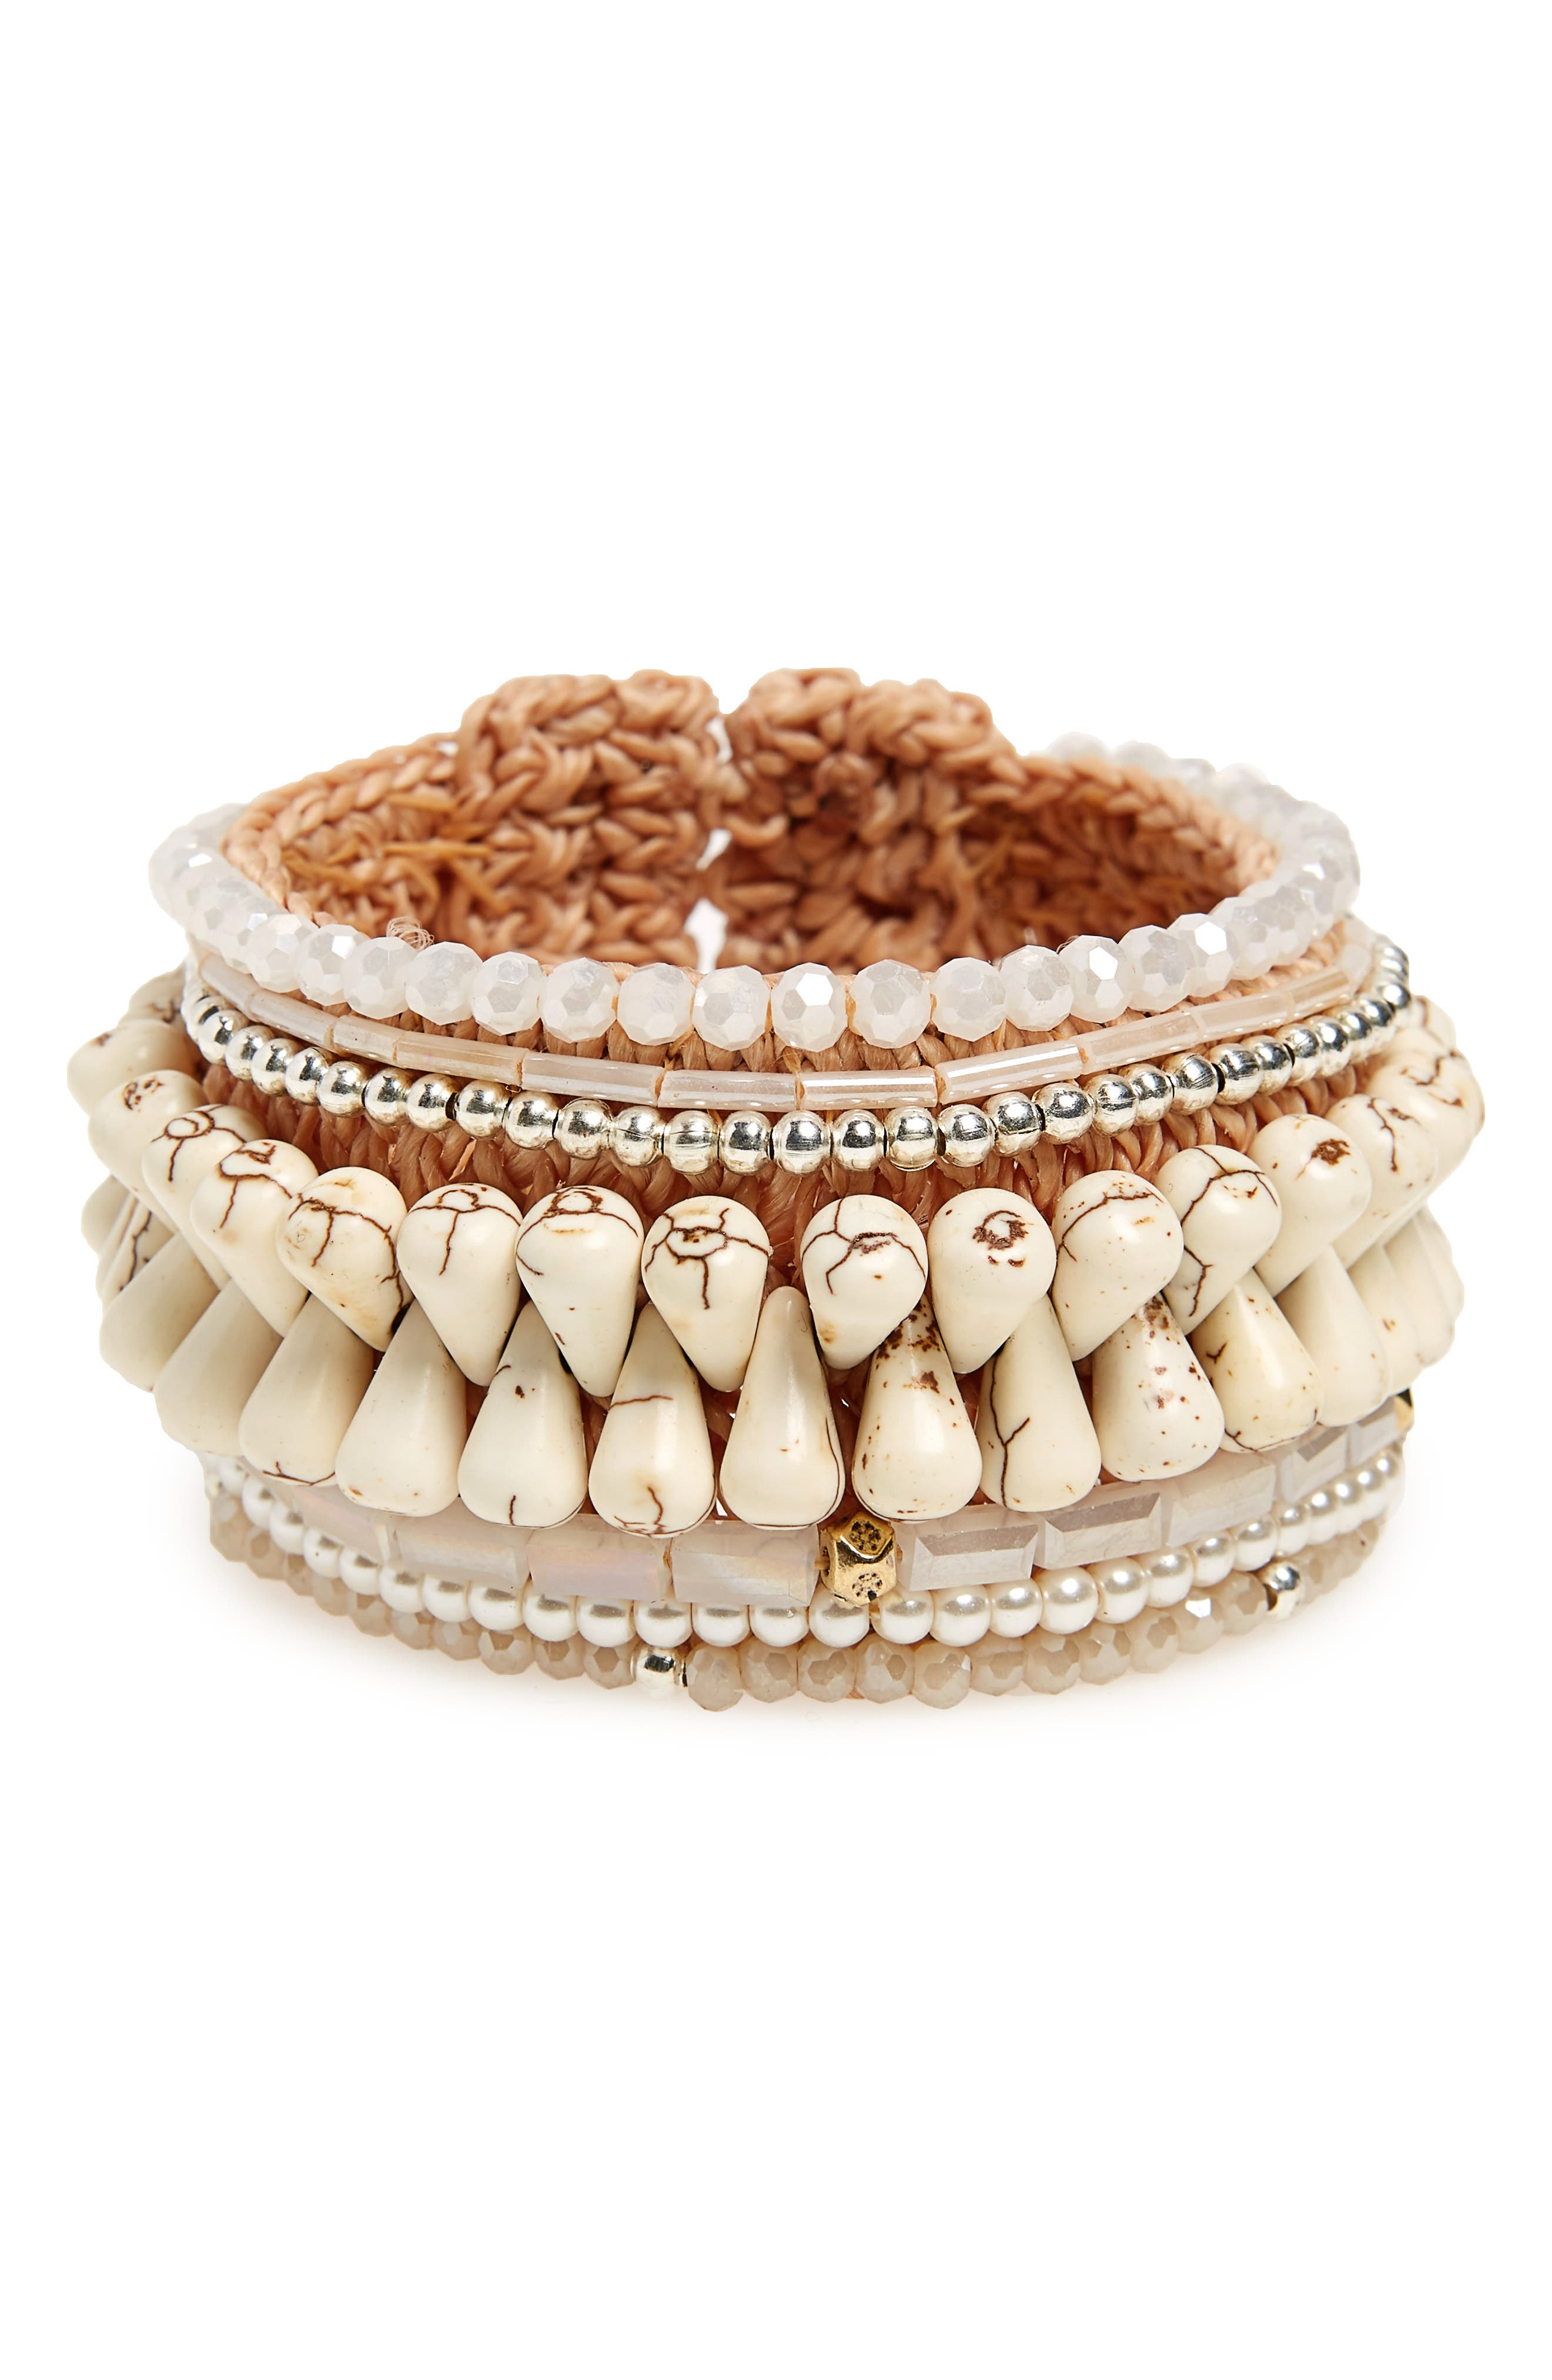 Beaded Rope Cuff Bracelet,                         Main,                         color, 100